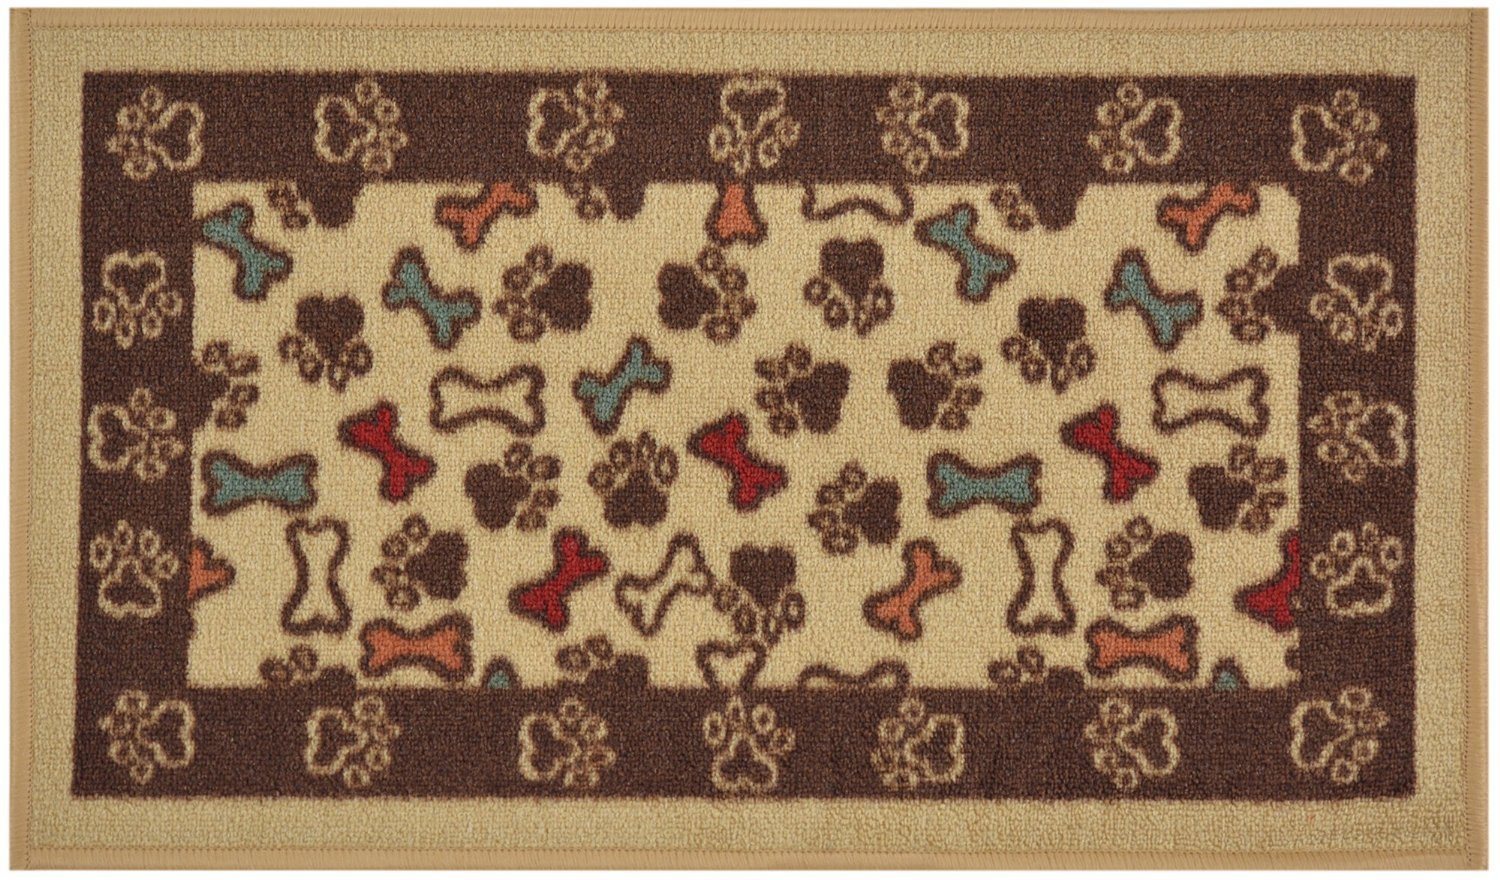 Pet Collection Bones and Paws Mat Doormat Beige Multi Color Slip Skid Resistant Rubber Backing (Beige, 17'' x 30'' Mat)